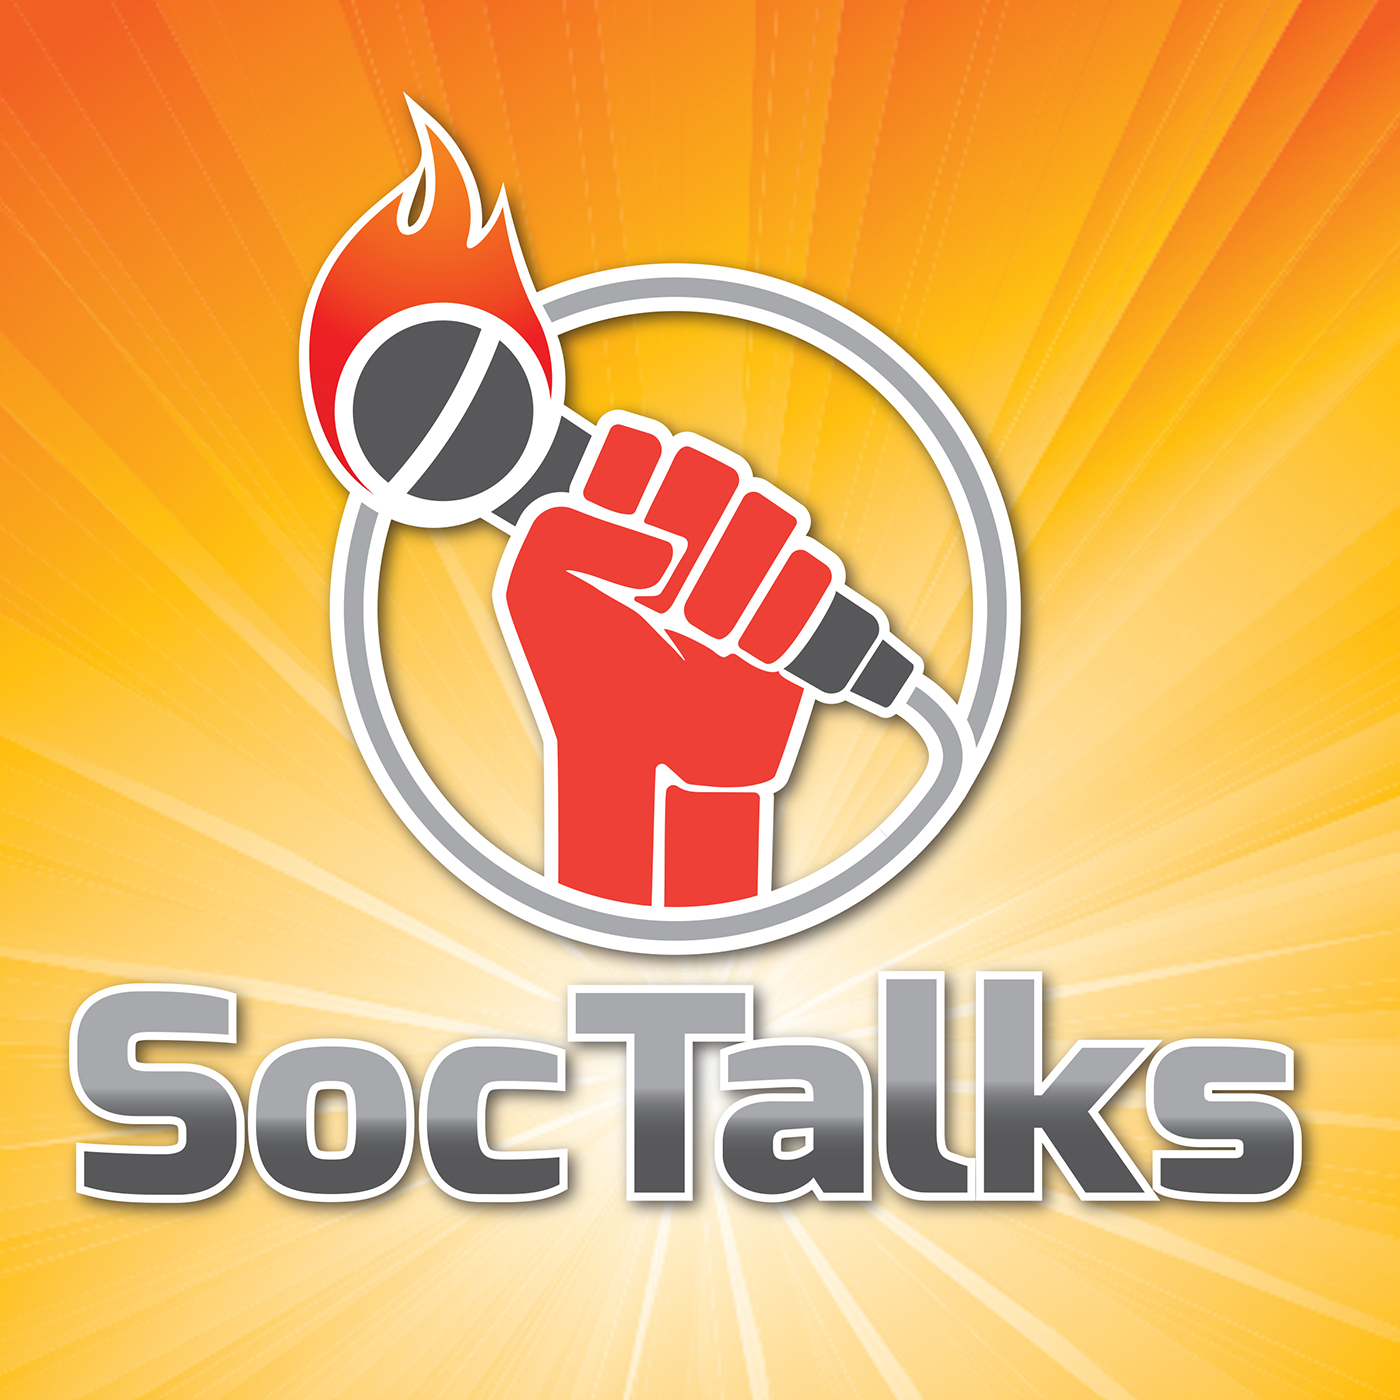 SocTalks Episode 021 Season 2 show art